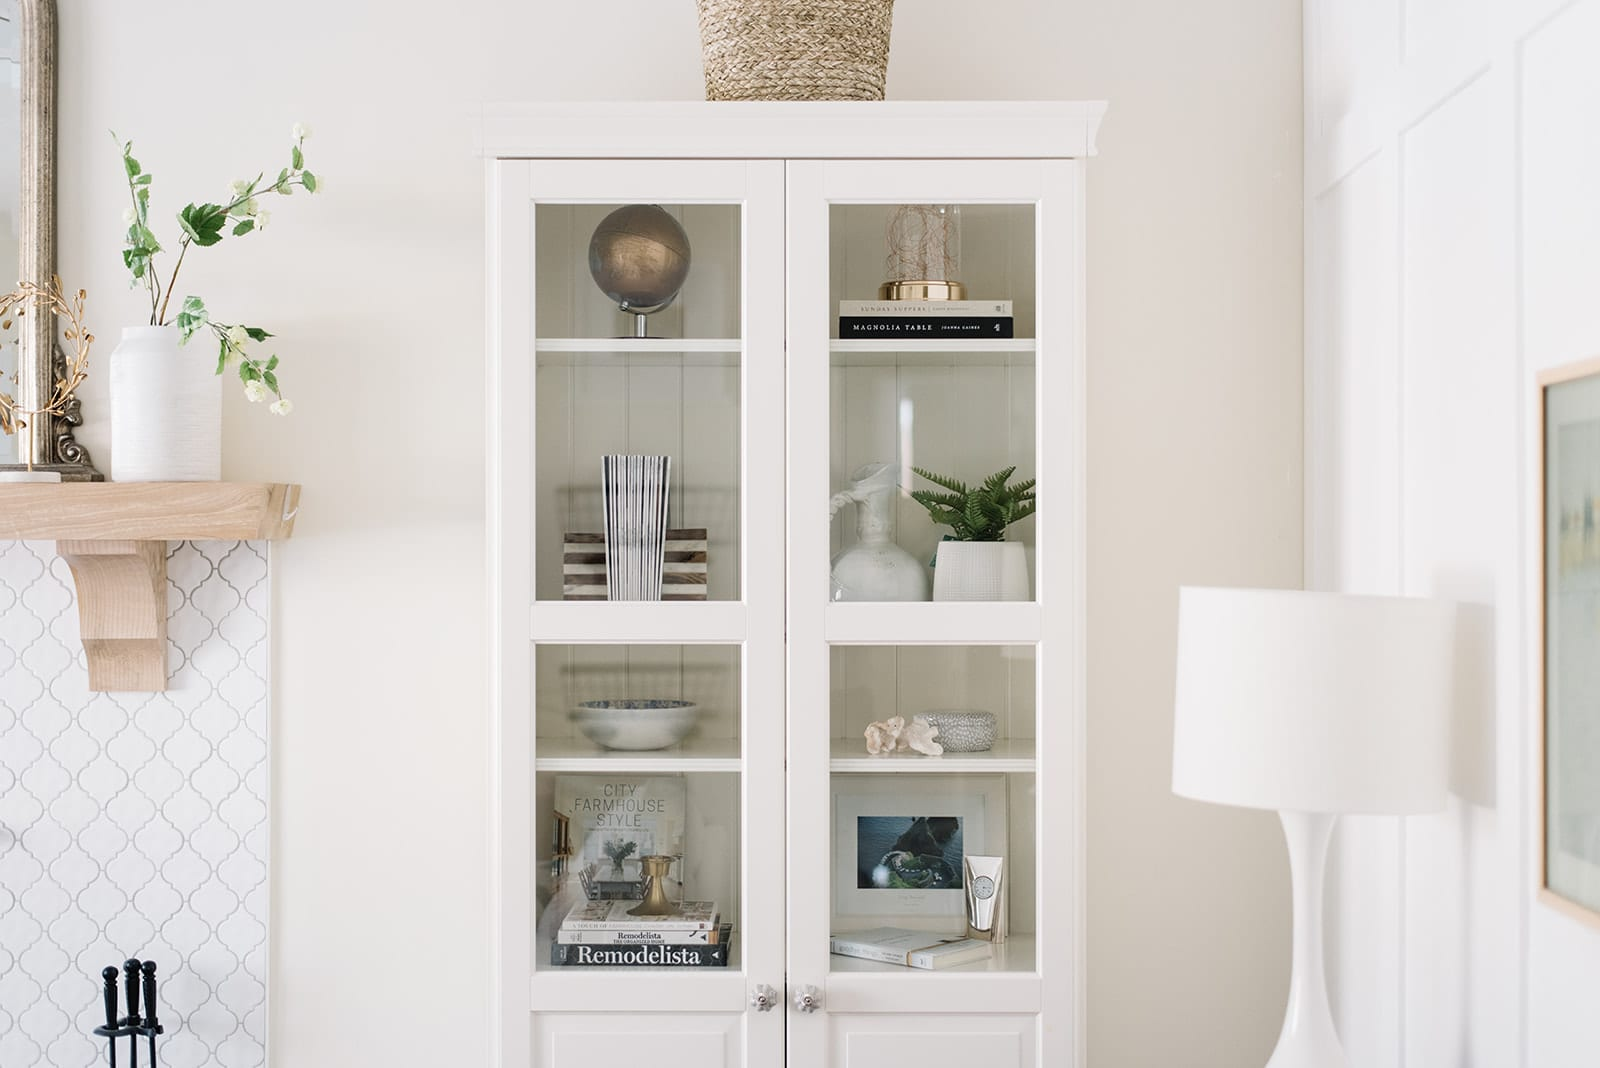 Ikea bookcases stand in for fireplace built ins and allow for the same shelf styling fun at The Ginger Home!